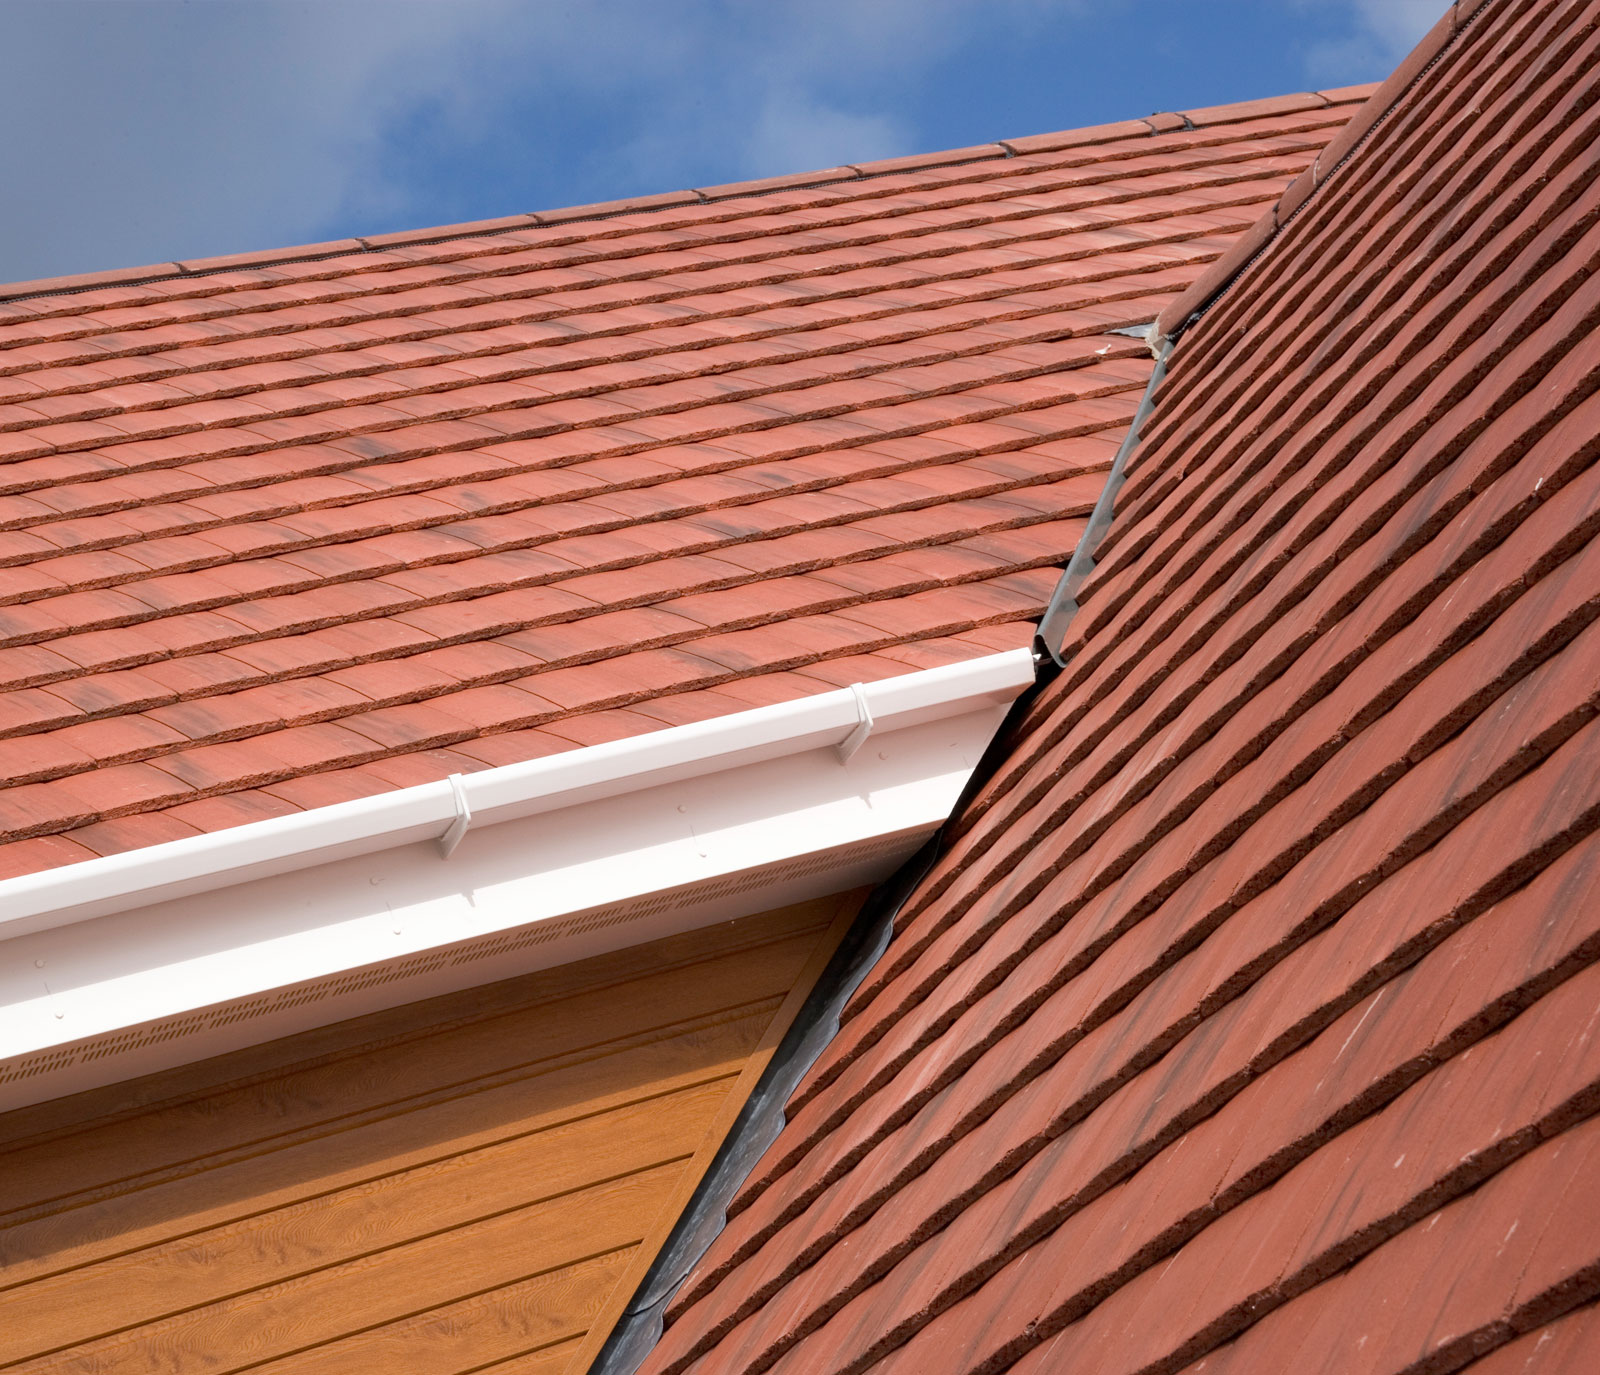 Repair And Maintenance Roof Tile Association Roof Tile